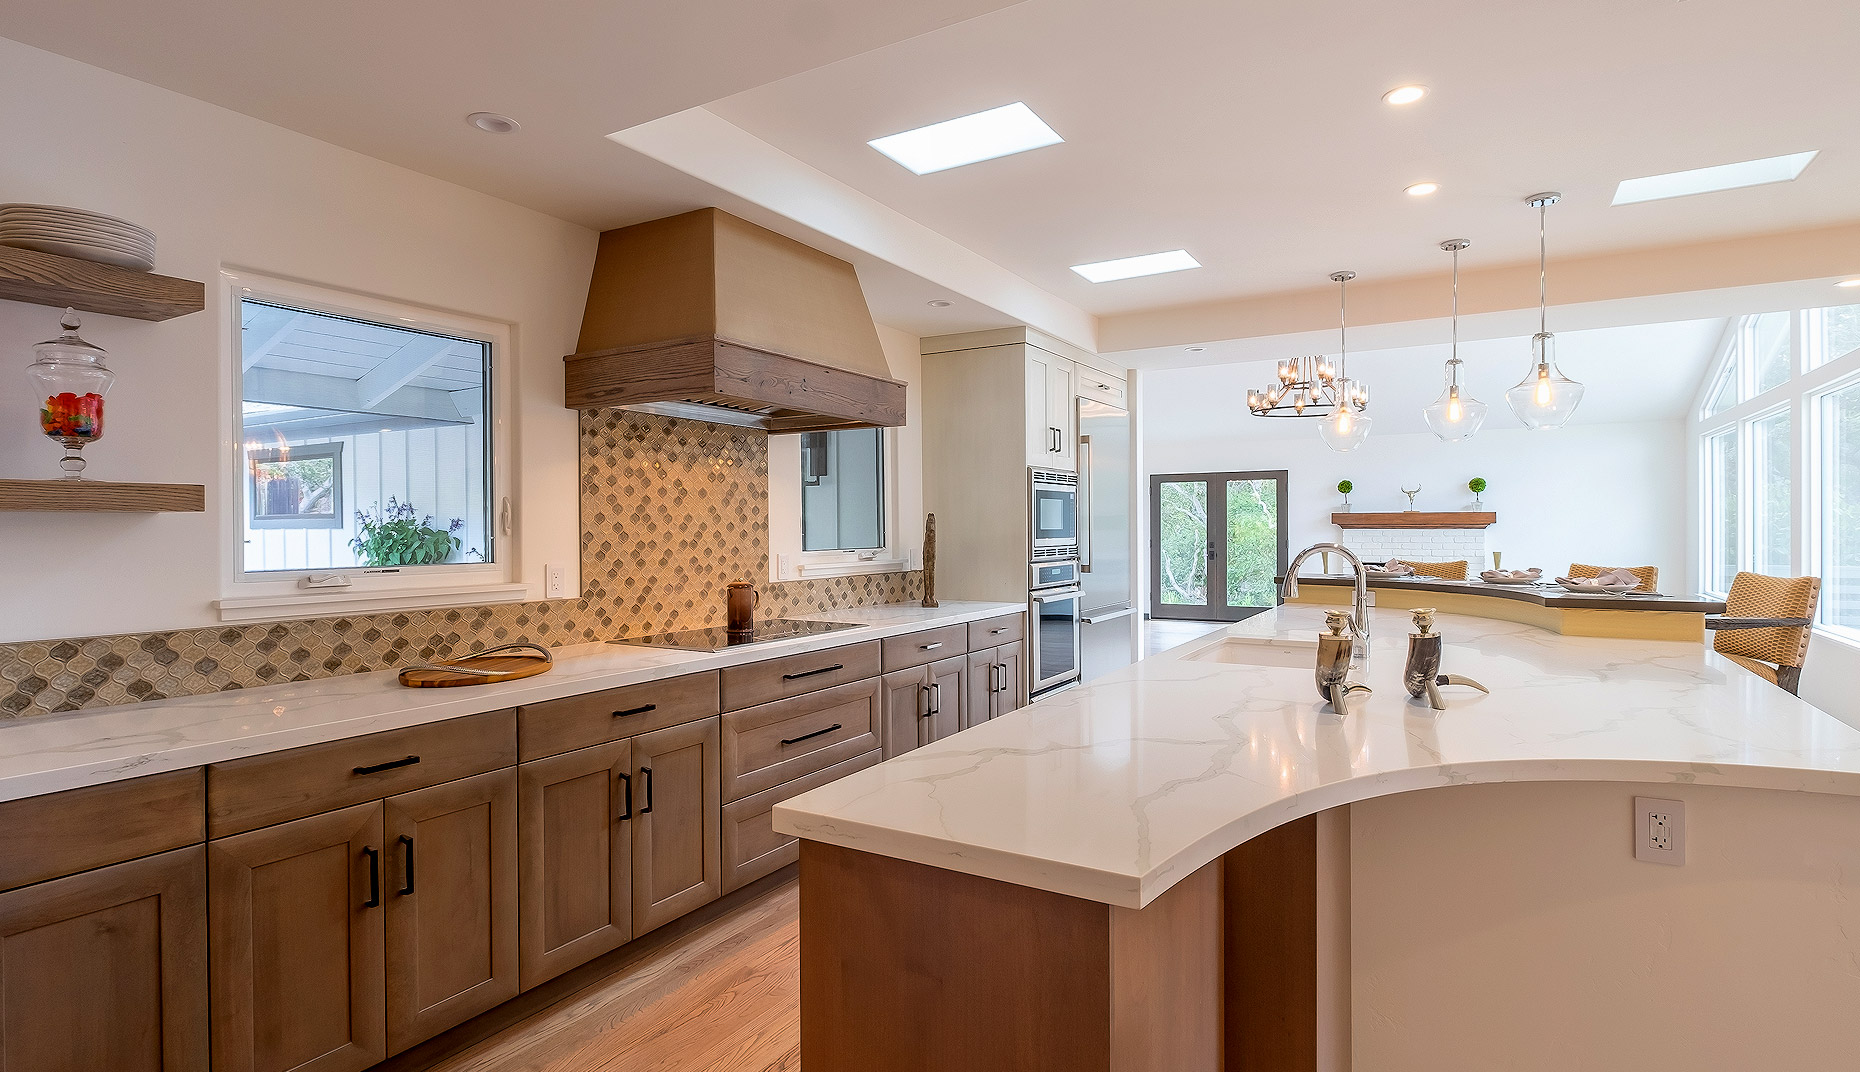 liz-stavrinides-carmel-valley-kitchen-design